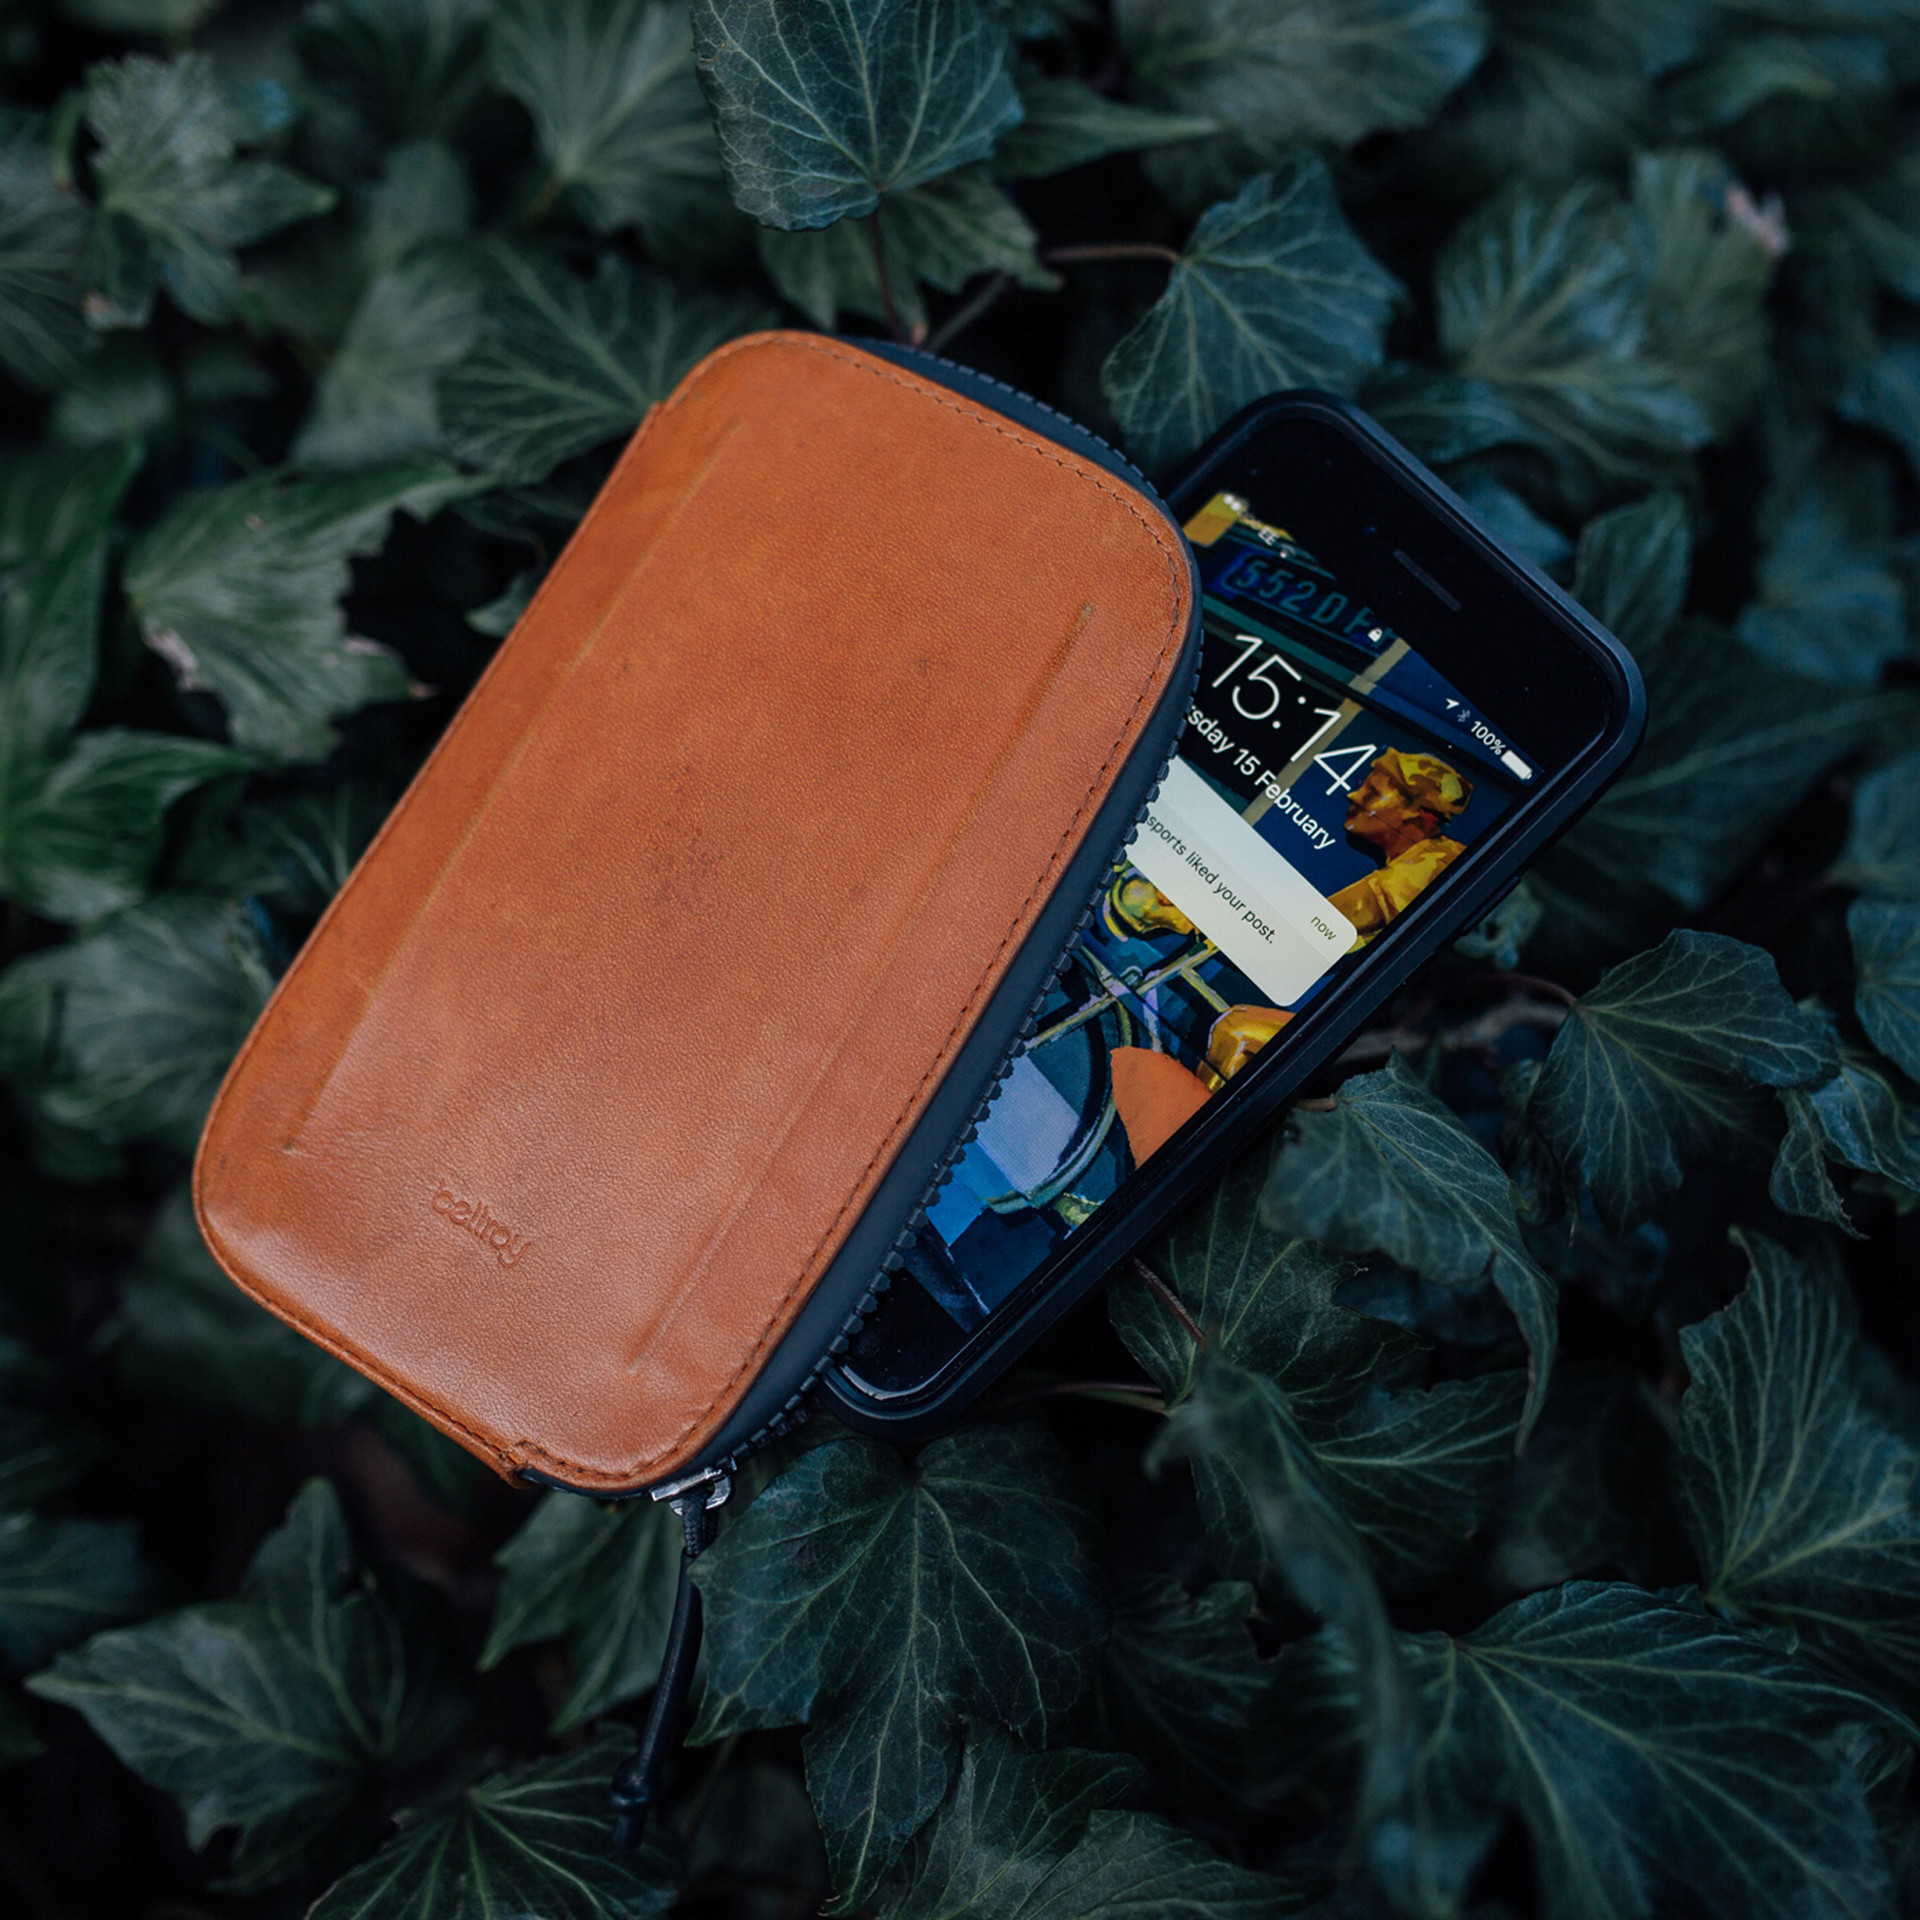 Phone in Bellroy Case